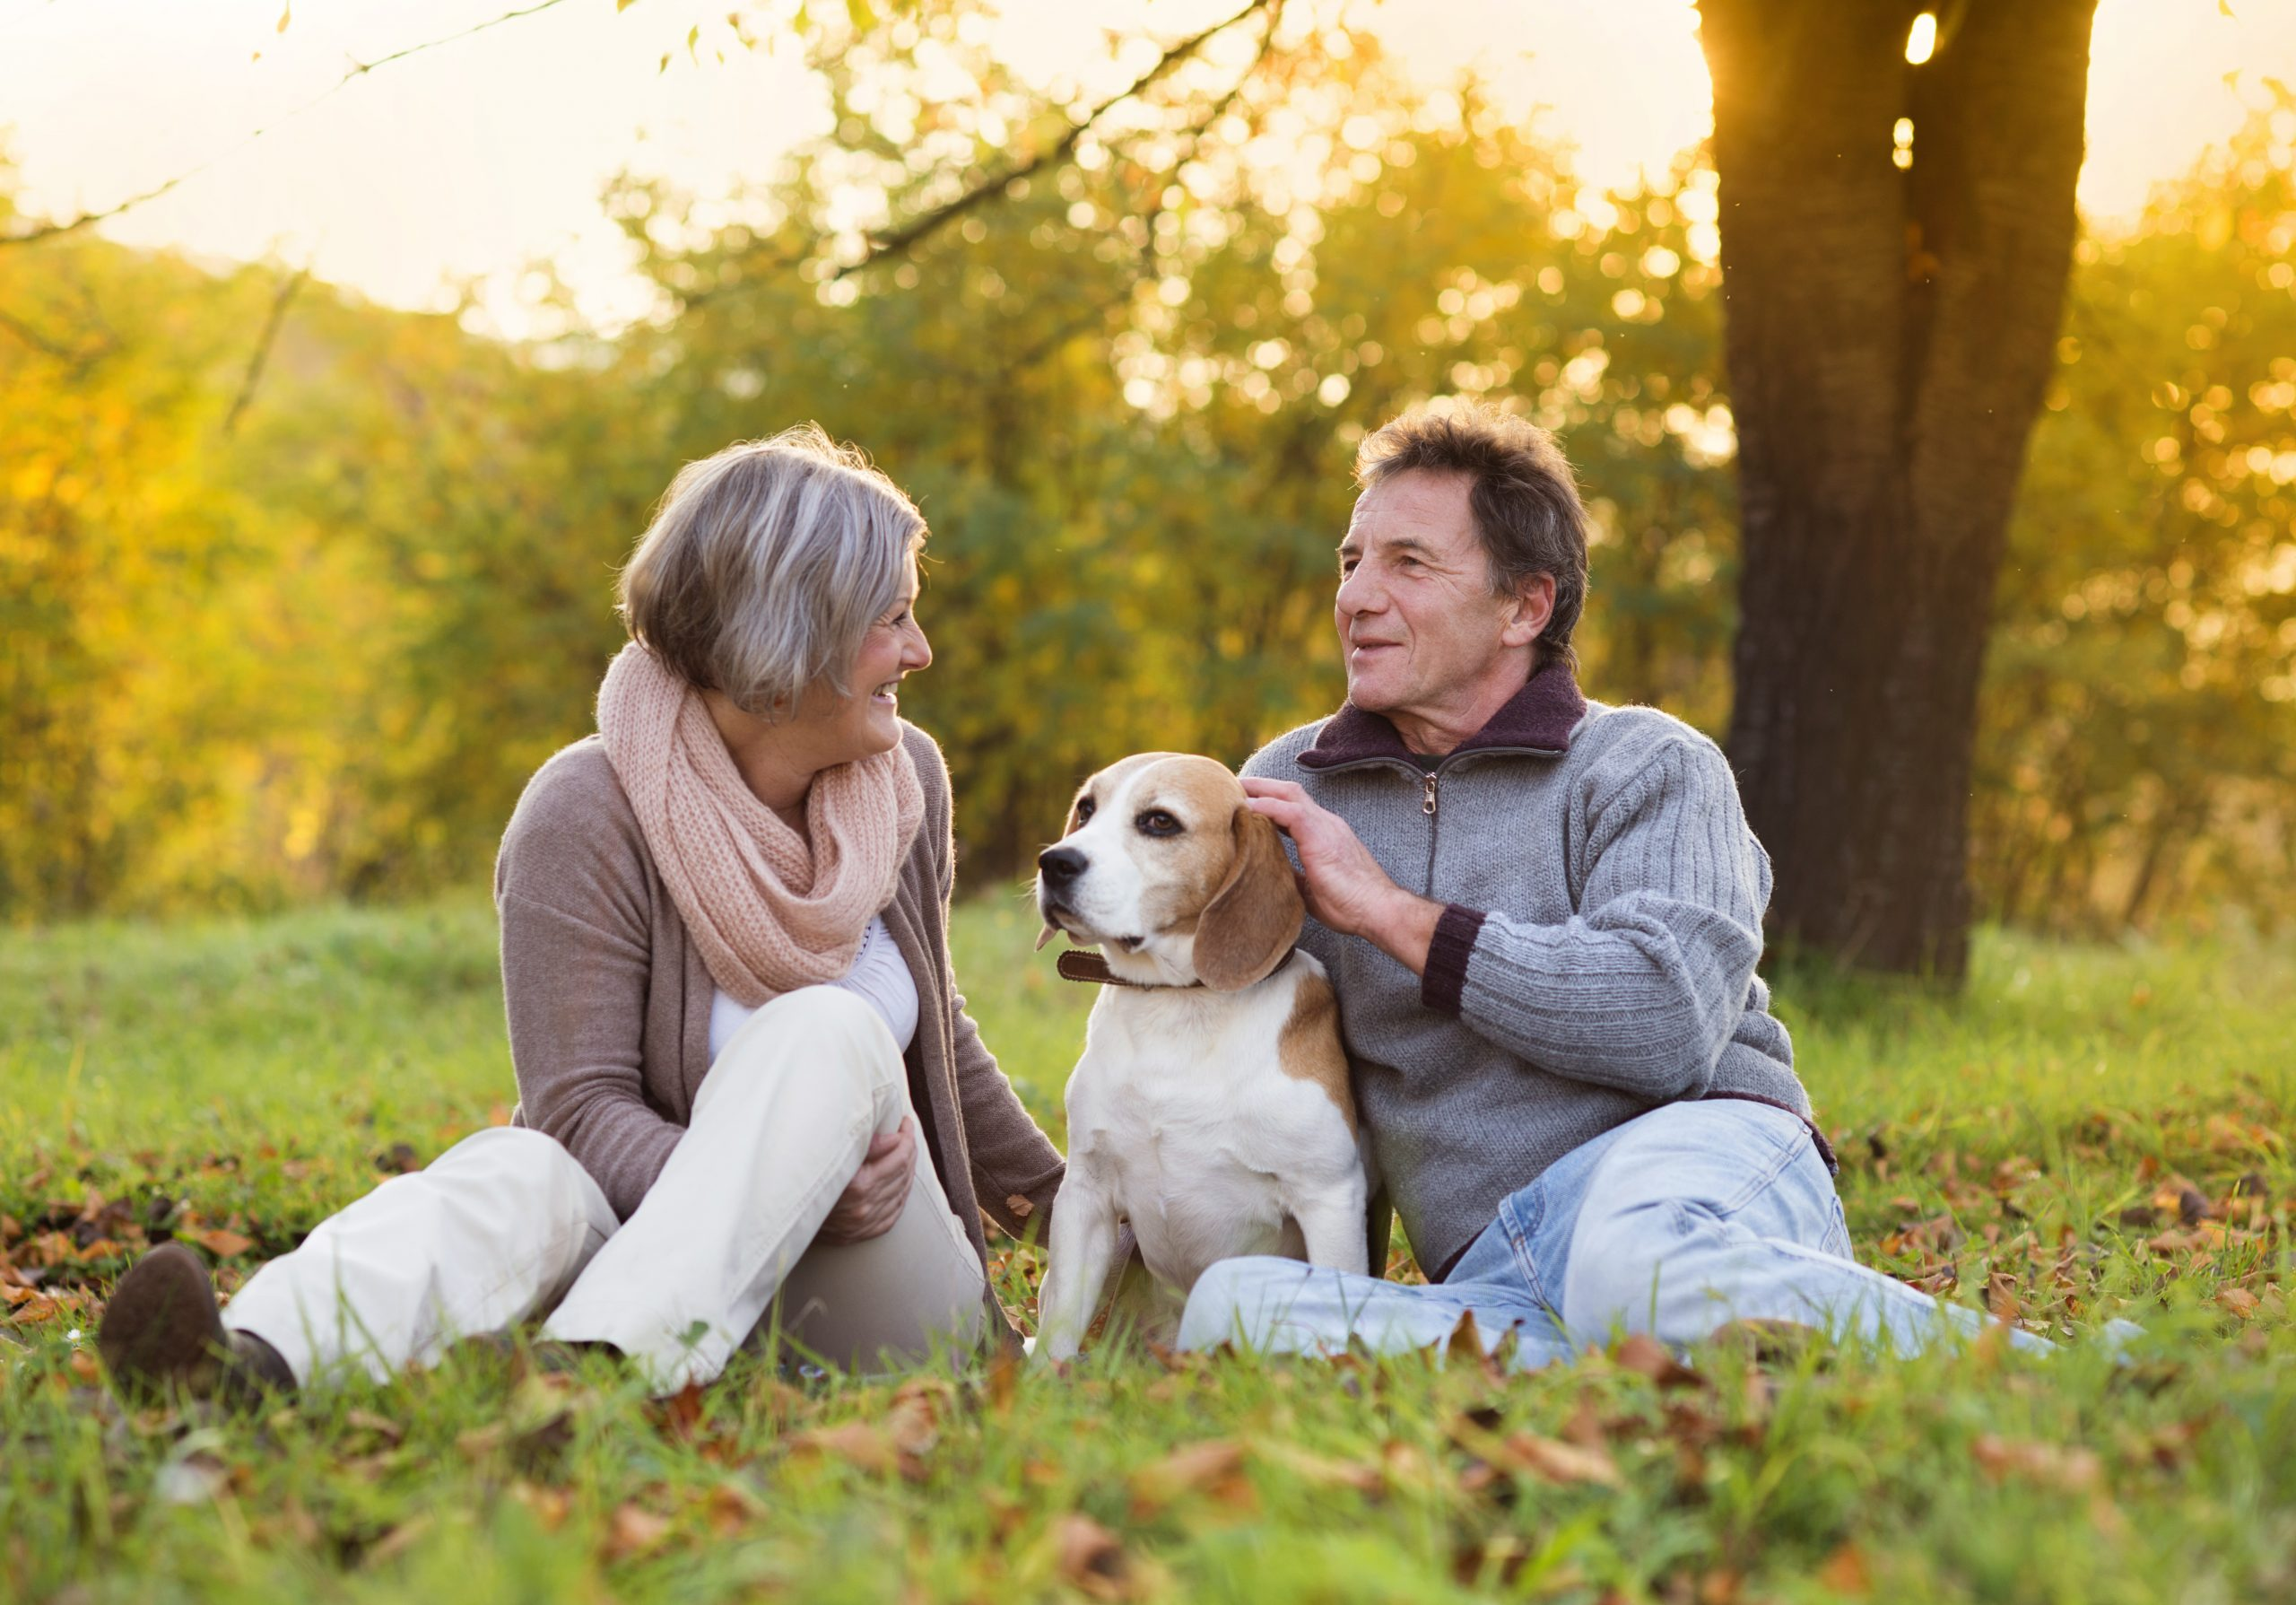 Seniors in retirement with dog